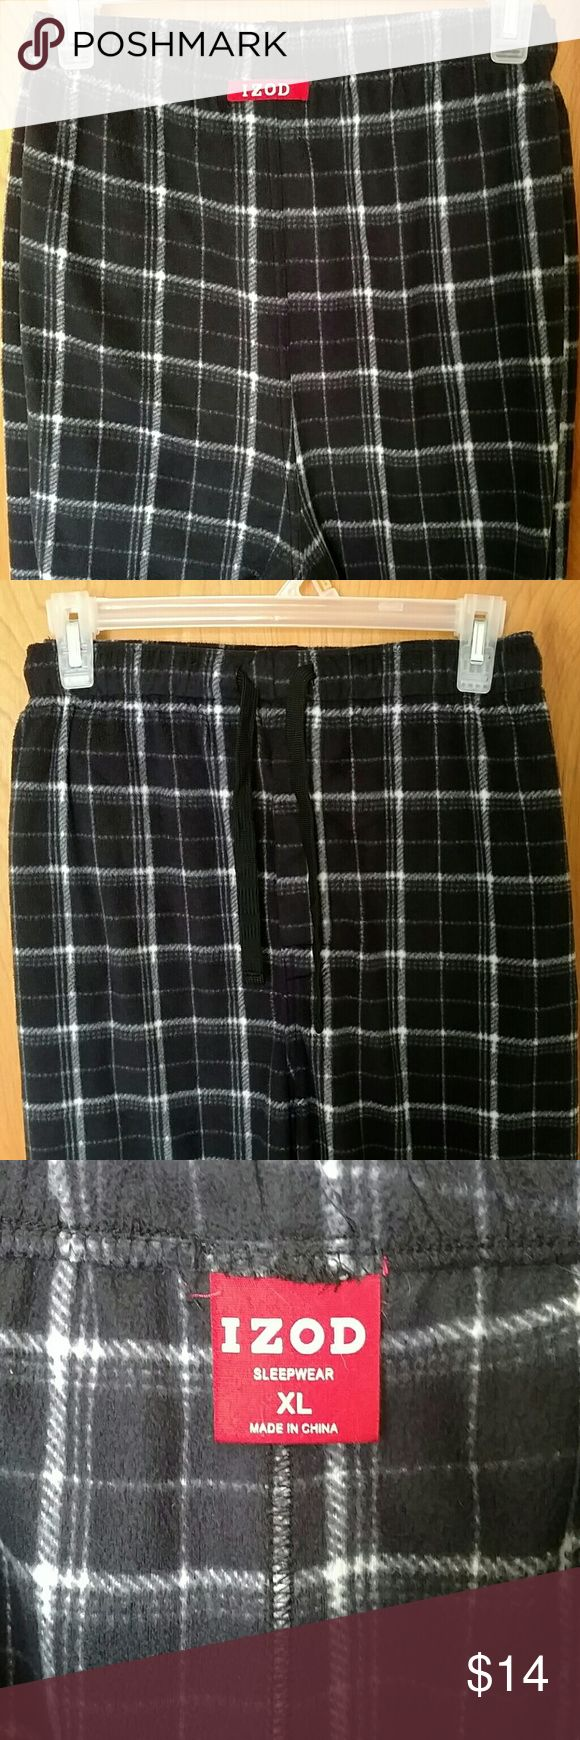 IZOD Men's Soft Sleep Pants IZOD brand men's sleep pants. Warm, soft, thick and fashionable! Black, white and gray plaid. Perfect to keep you warm and cozy as you lounge or sleep. Features drawstring and elastic at waist, a button fly, and side pockets. 100% polyester. Excellent condition. From a smoke free home. Izod Pants Sweatpants & Joggers